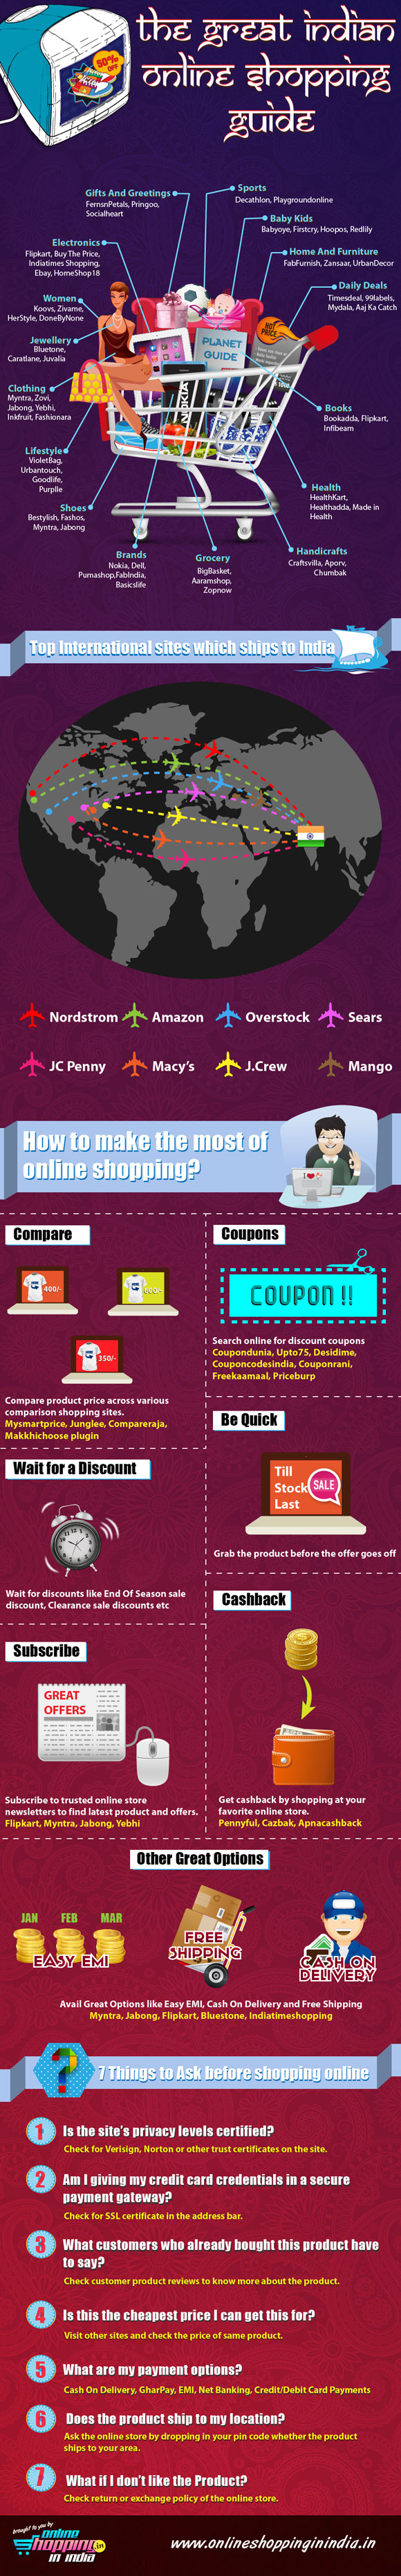 e-Shopping in India-Infographic